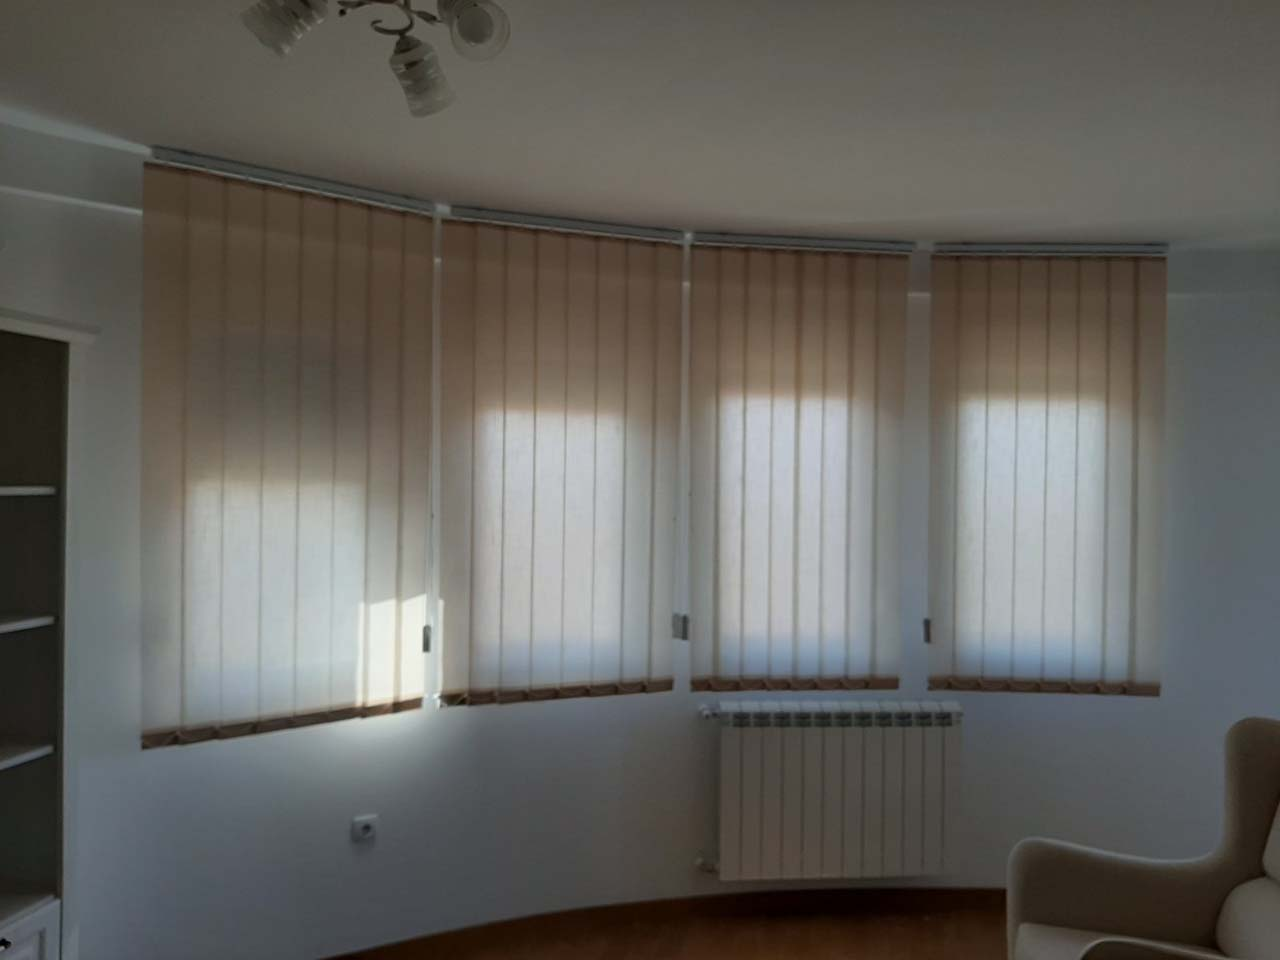 CURTAIN ROLLER BLINDS M ROLL  Awnings, Venetian Blinds, Blinds Kragujevac - Photo 7